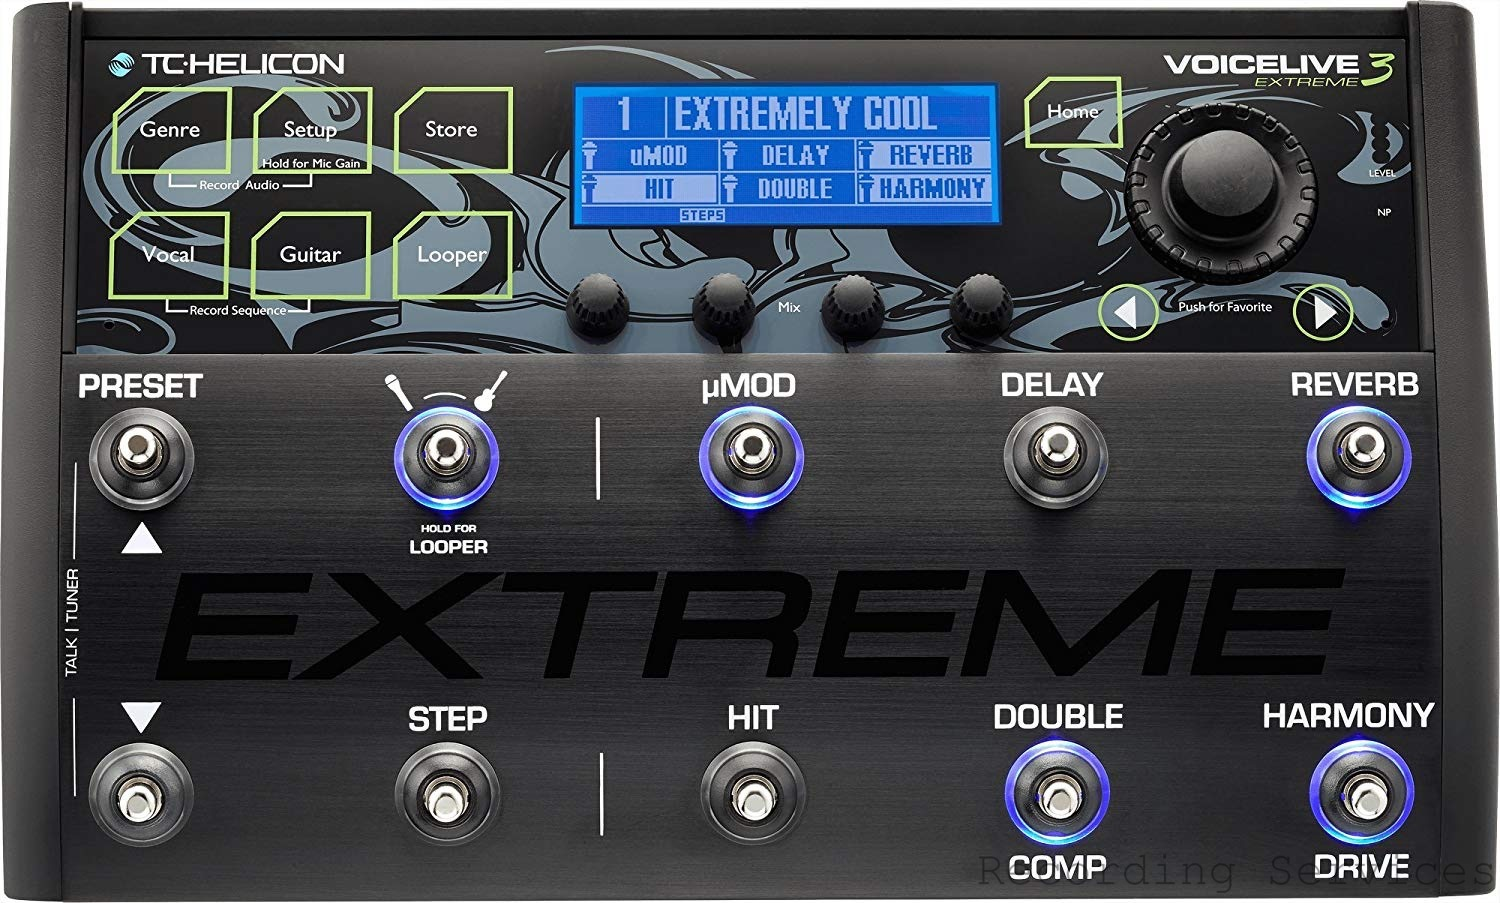 TC Helicon VoiceLive 3 Extreme Vocal Effects Proce